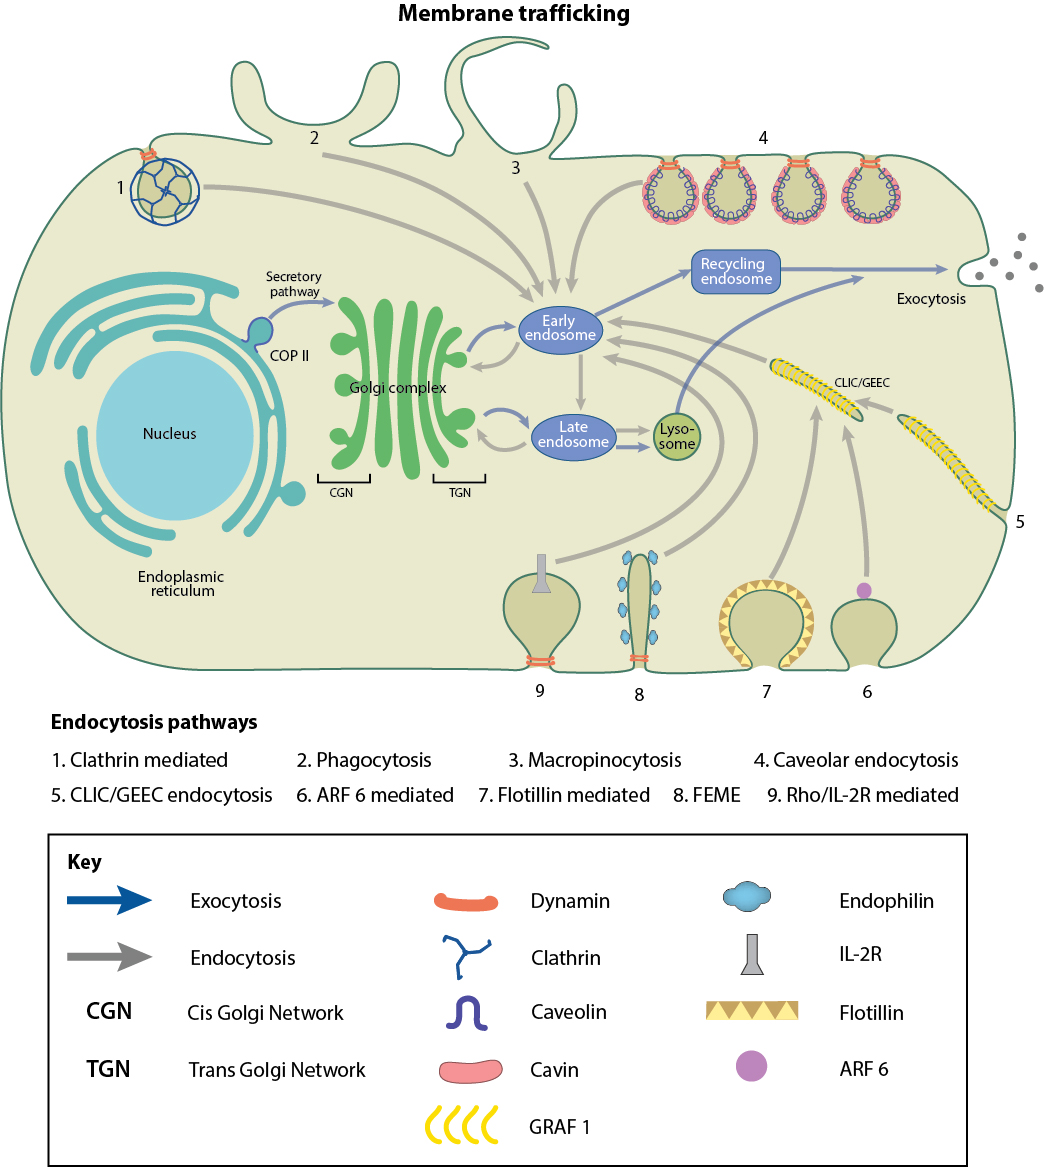 hight resolution of membrane trafficking pathways